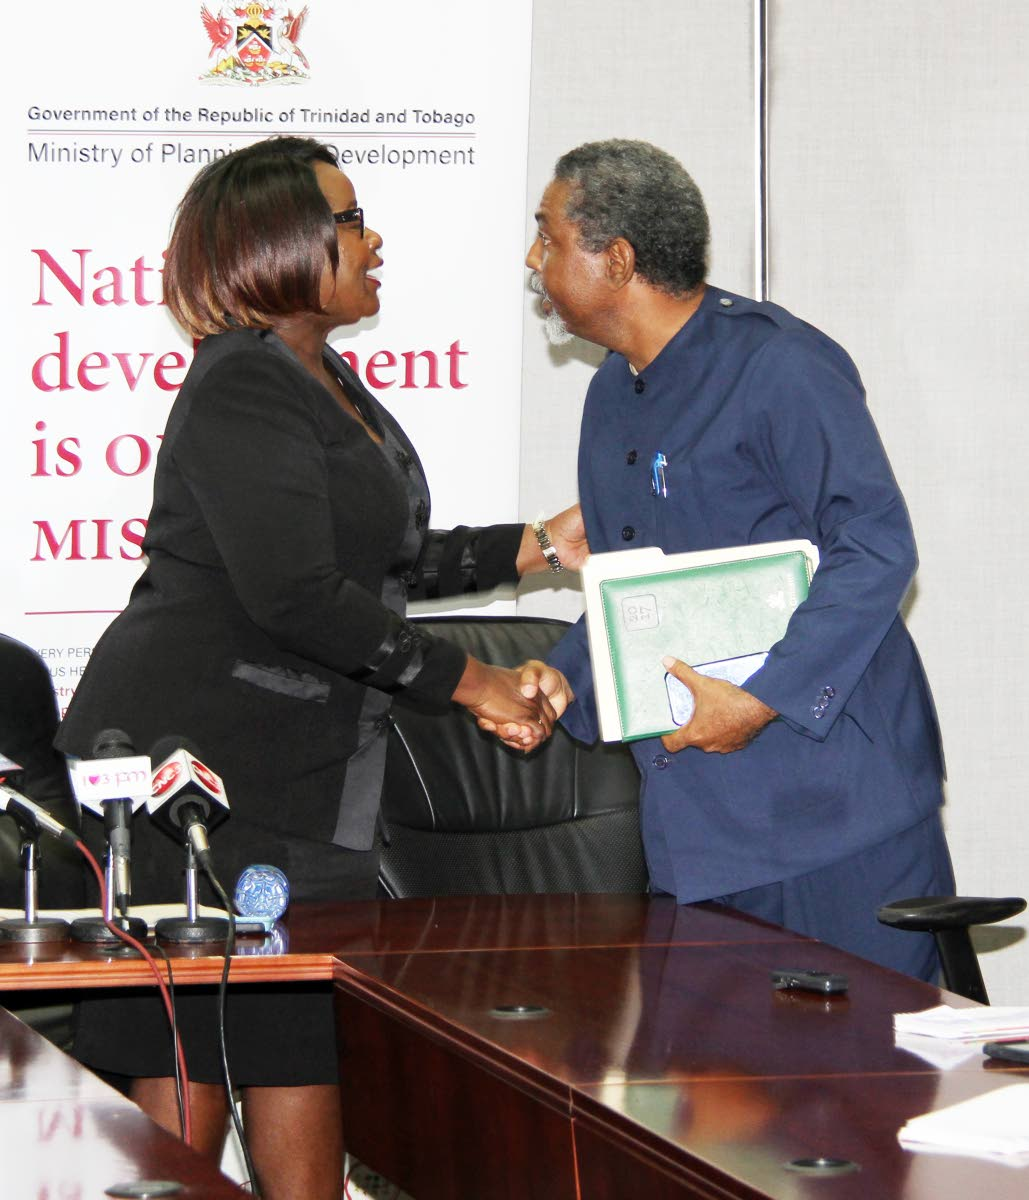 Welcome back: National Tripartite Advisory Council chairman Camille Robinson-Regis greets Vincent Cabrera, president of the Banking, Insurance and General Workers Union (BIGWU), as members of the labour movement return to the council at Eric Williams Financial Complex, Port of Spain on September 20, 2017. PHOTO BY SUREASH CHOLAI.